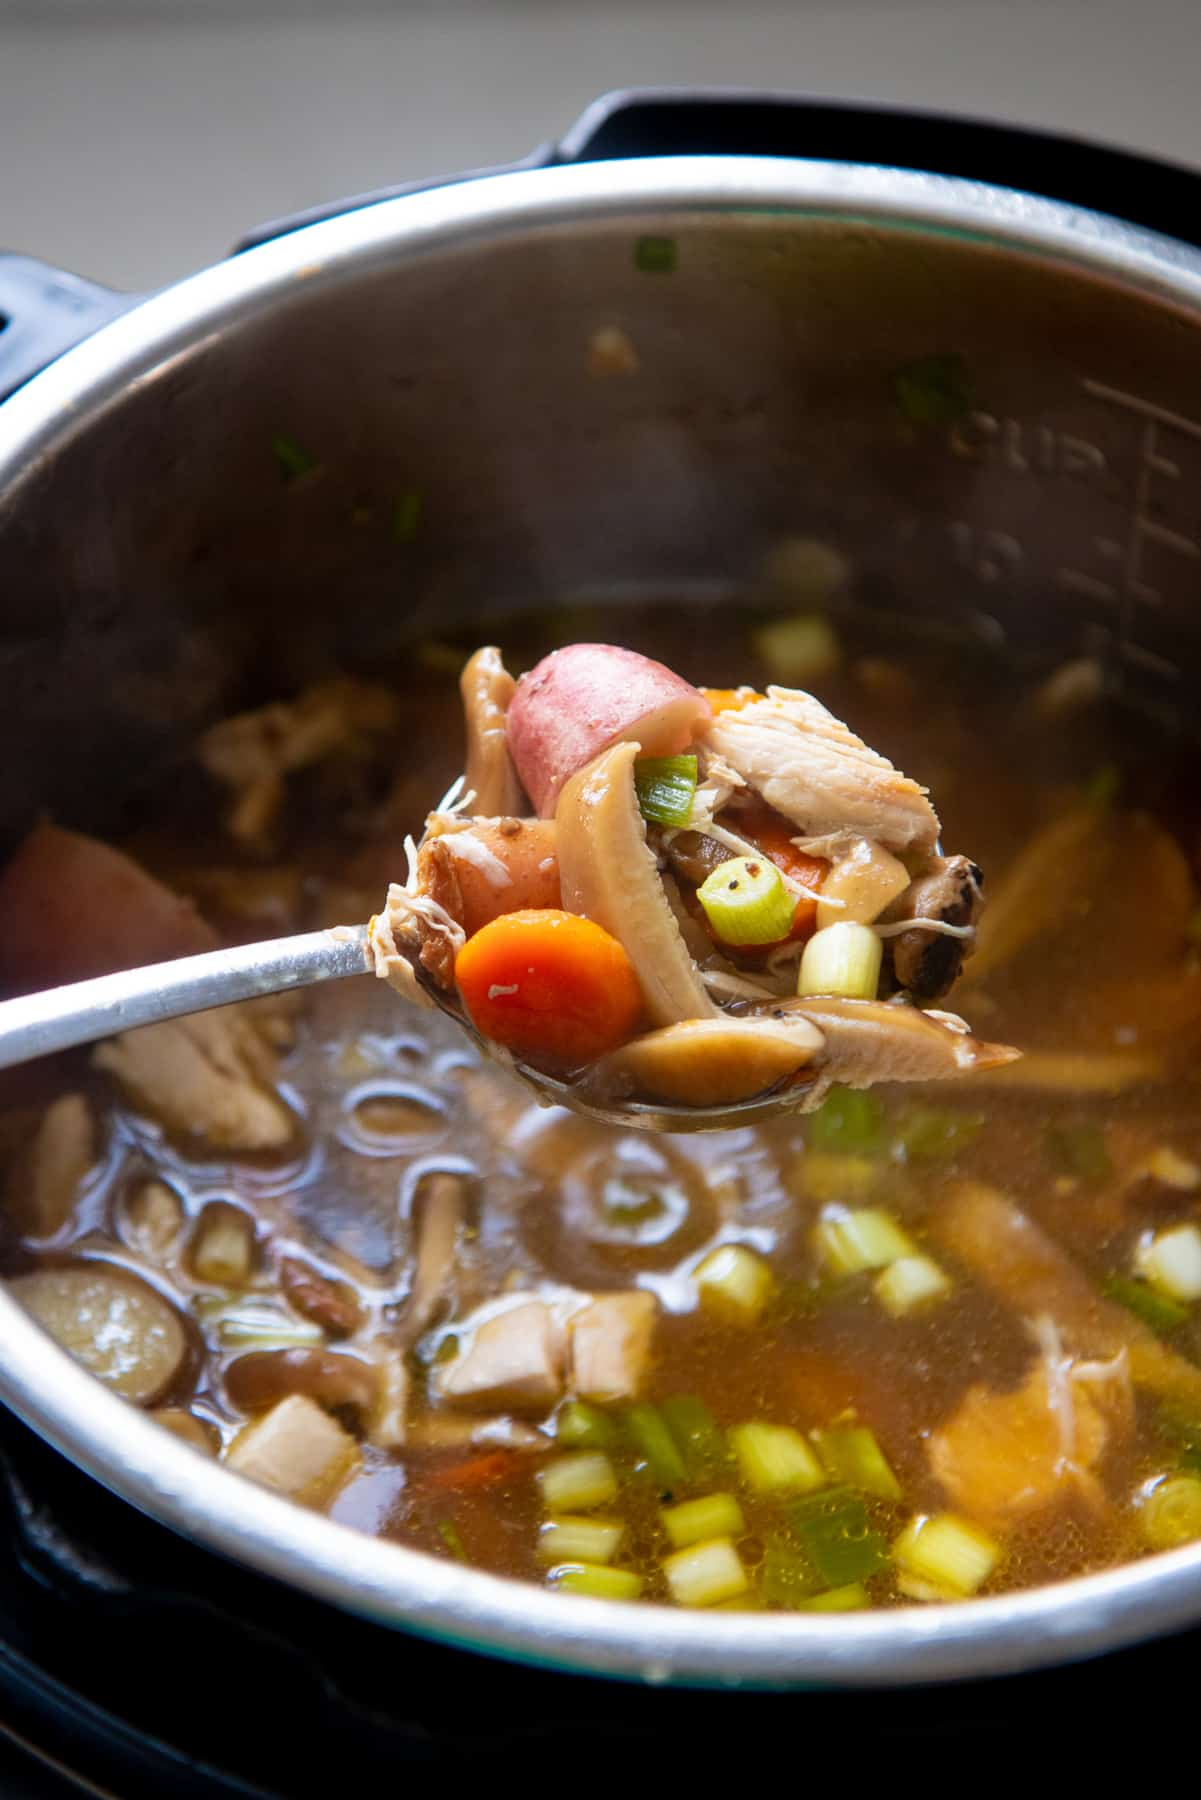 A spoon holds a scoop of soup over an open Instant Pot.